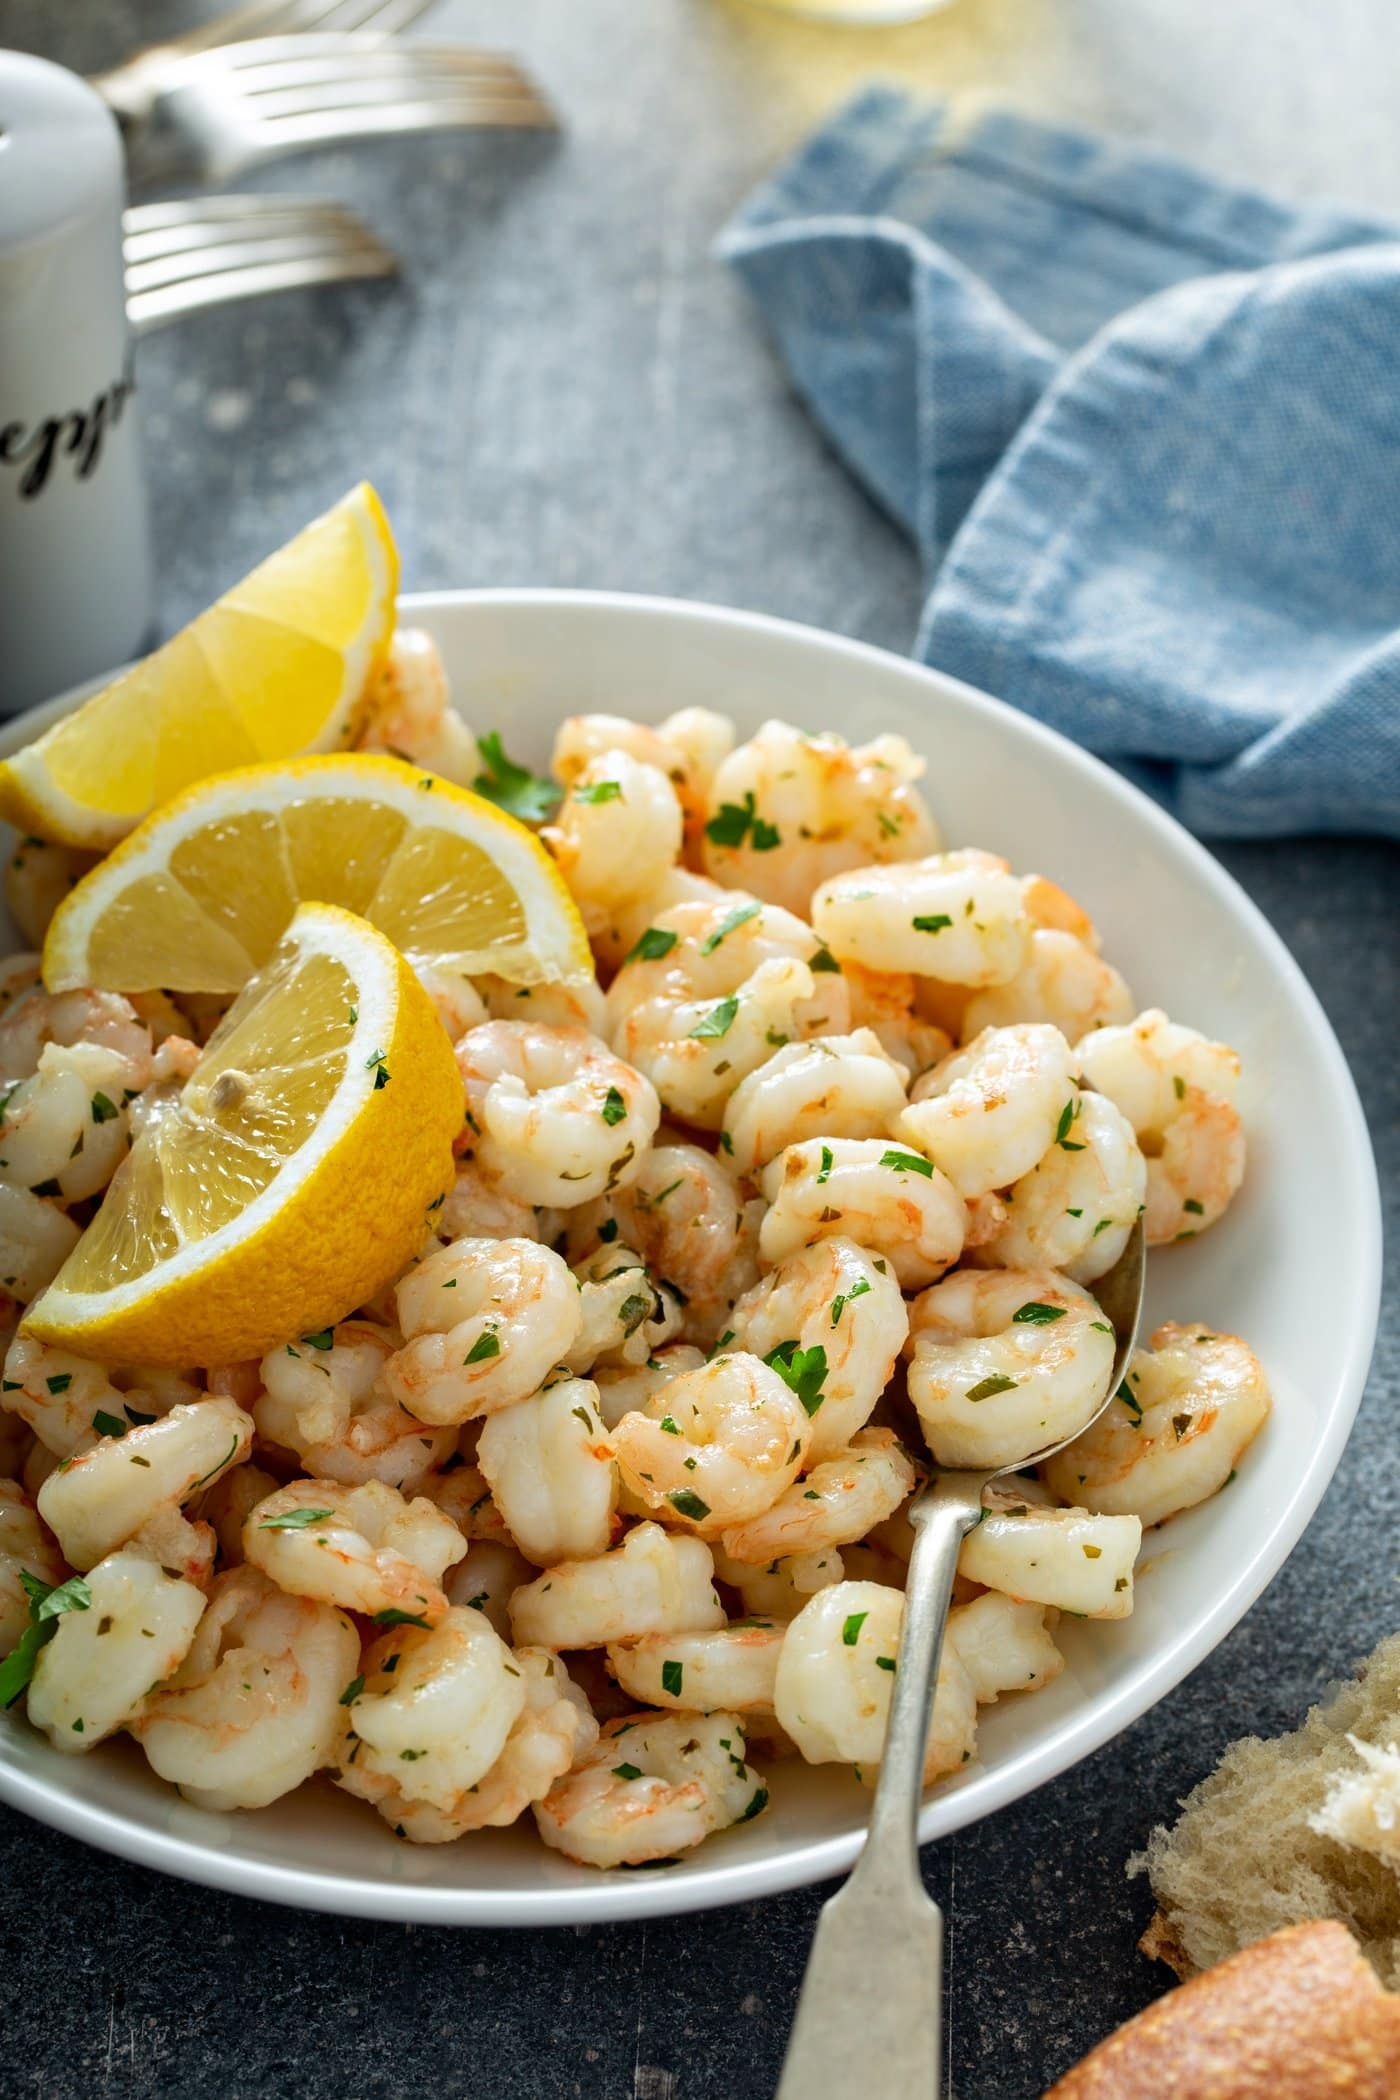 A serving plate of lemon garlic shrimp with three lemon wedges and fresh parsley on top. A napkin and salt and pepper shaker are in the background.